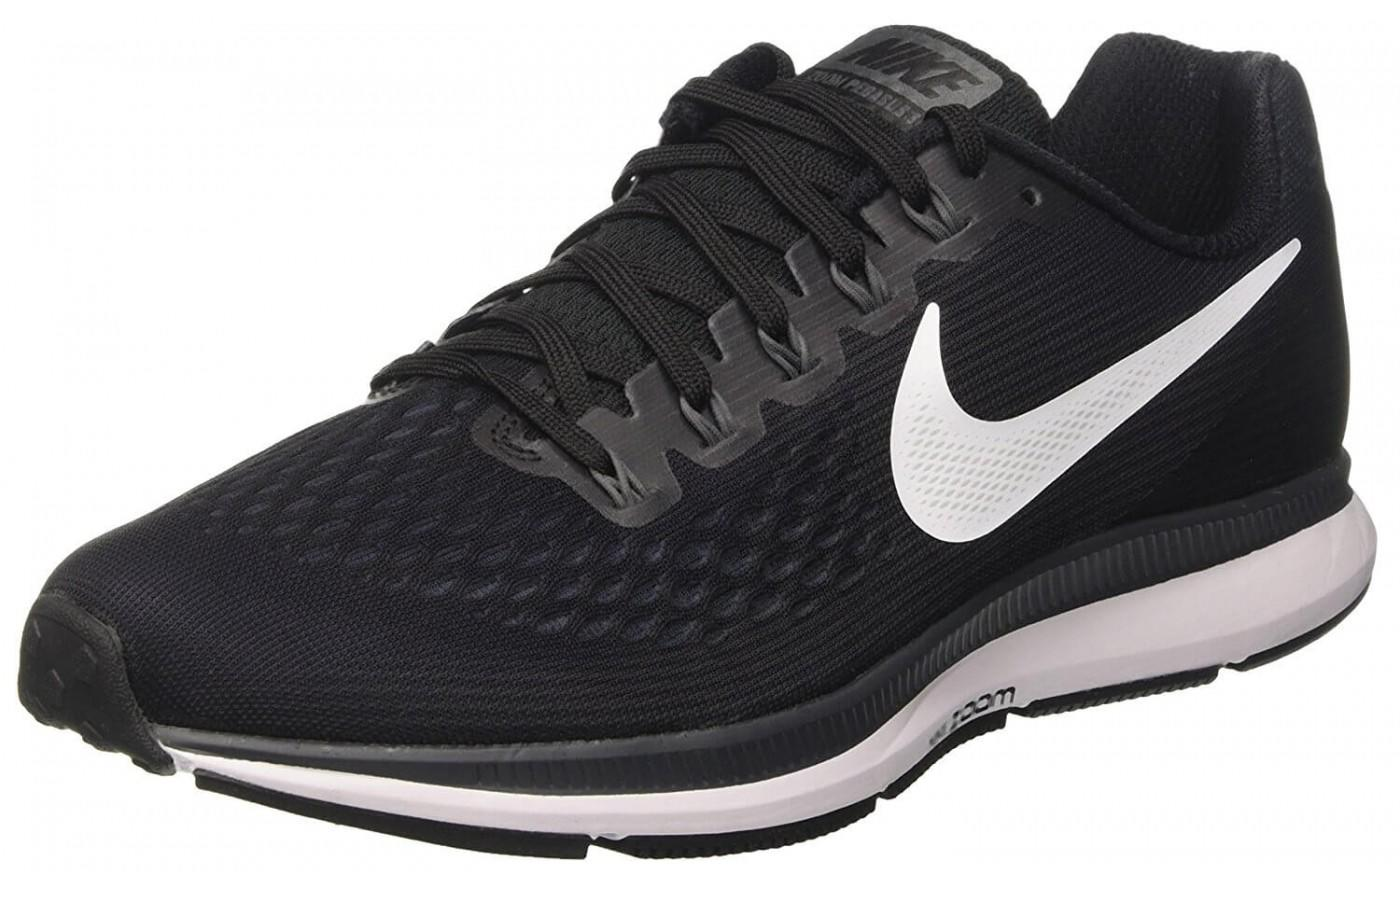 best website 14561 506a7 the upper of the Nike Air Zoom Pegasus 34 is made of breathable Flymesh ...